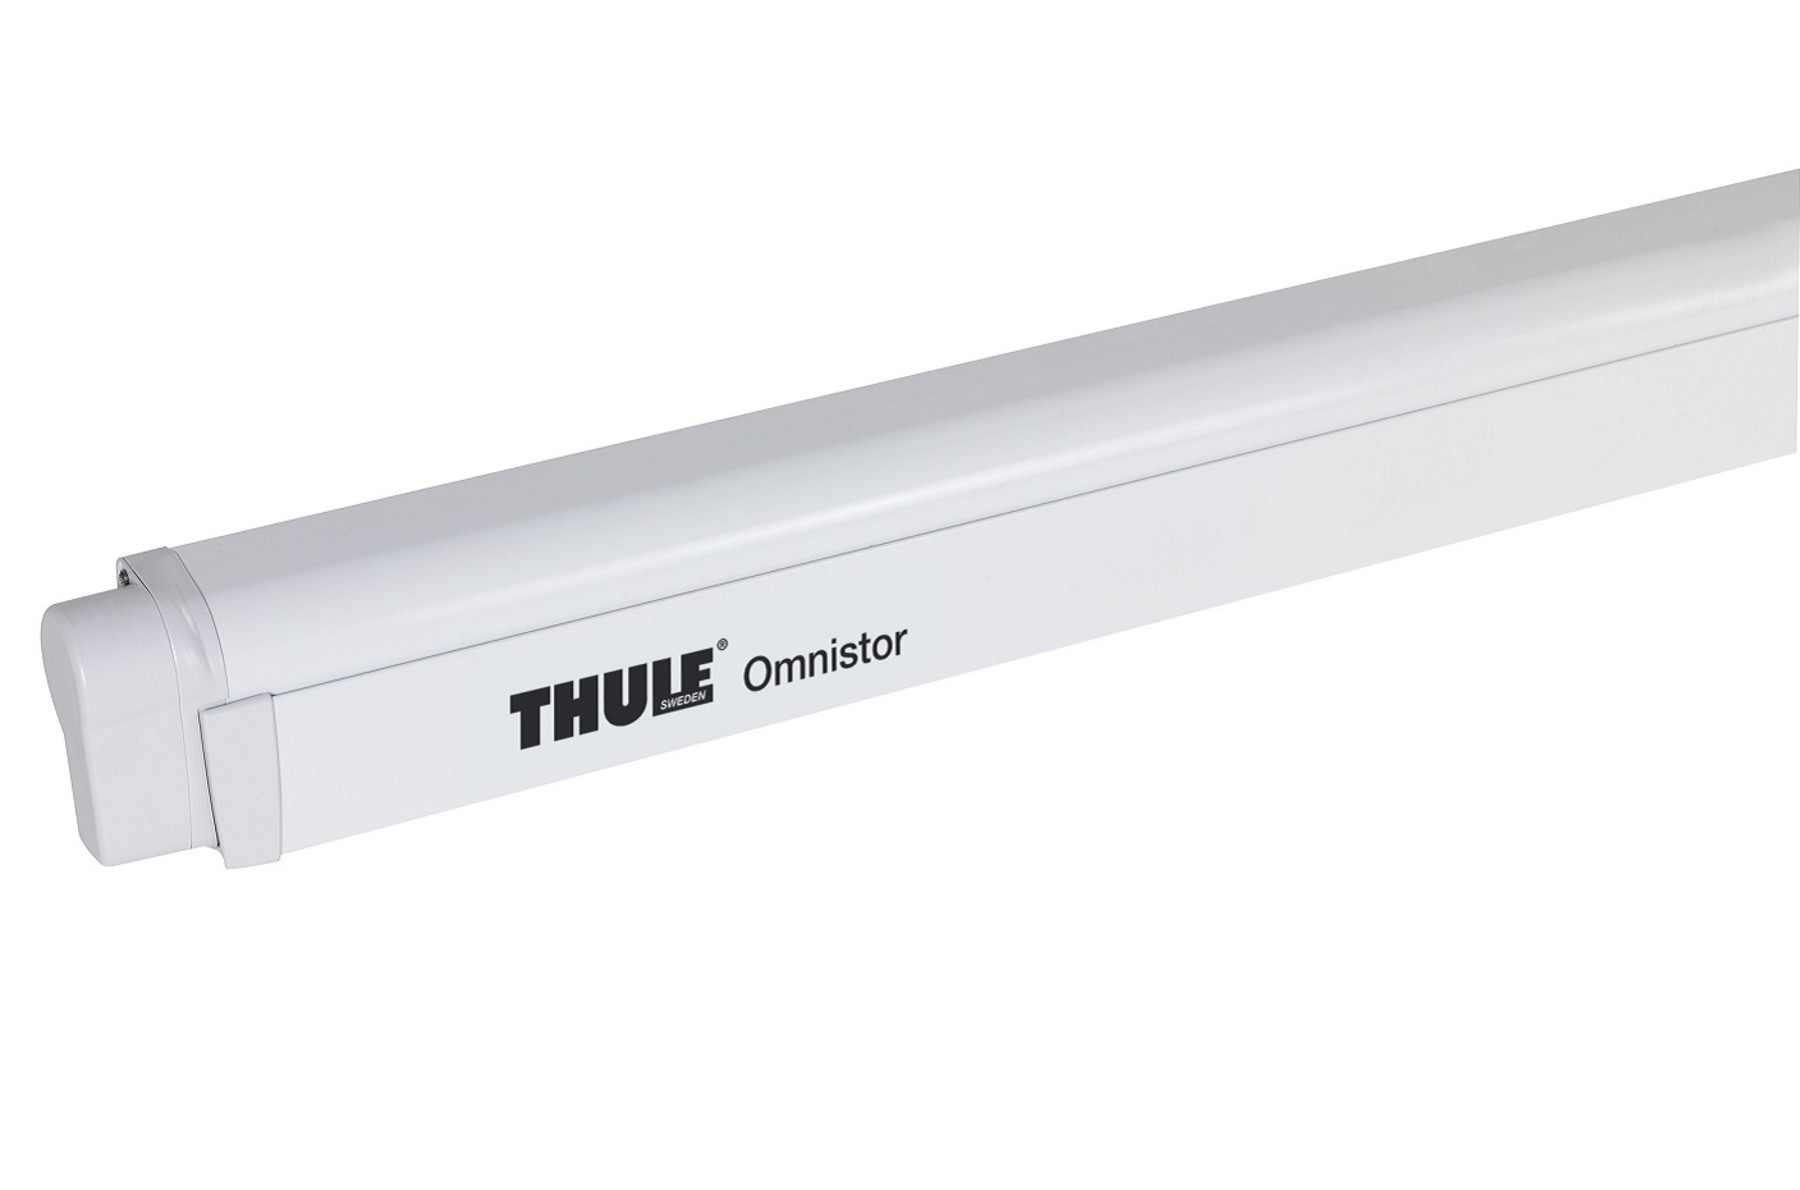 Thule omnistor 4900 awning caravan motorhome wall mounted white